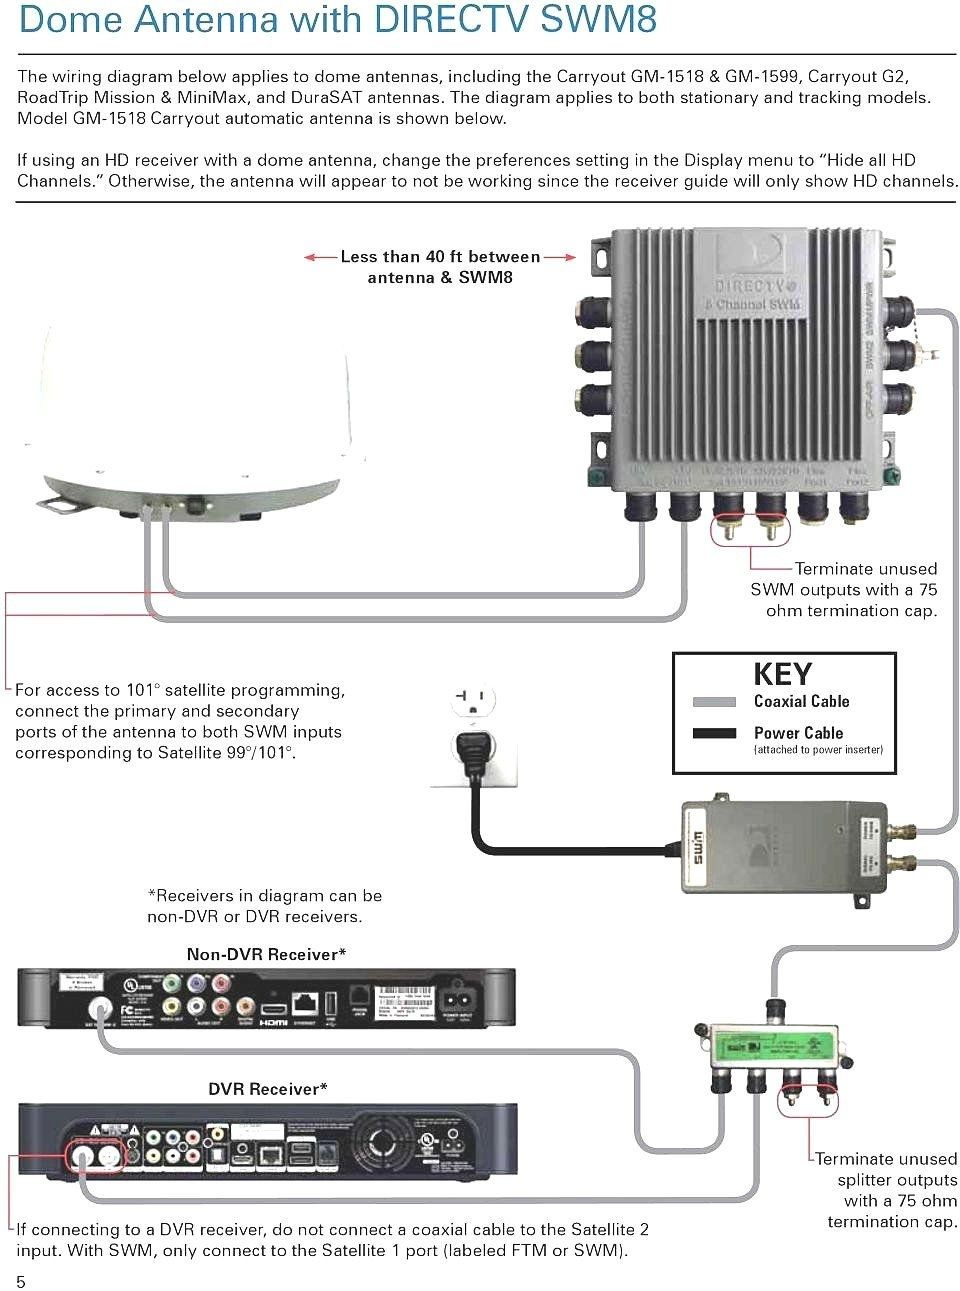 directv swm 16 wiring diagram briggs and stratton nikki carburetor direct tv blurts me pleasing lovely regarding